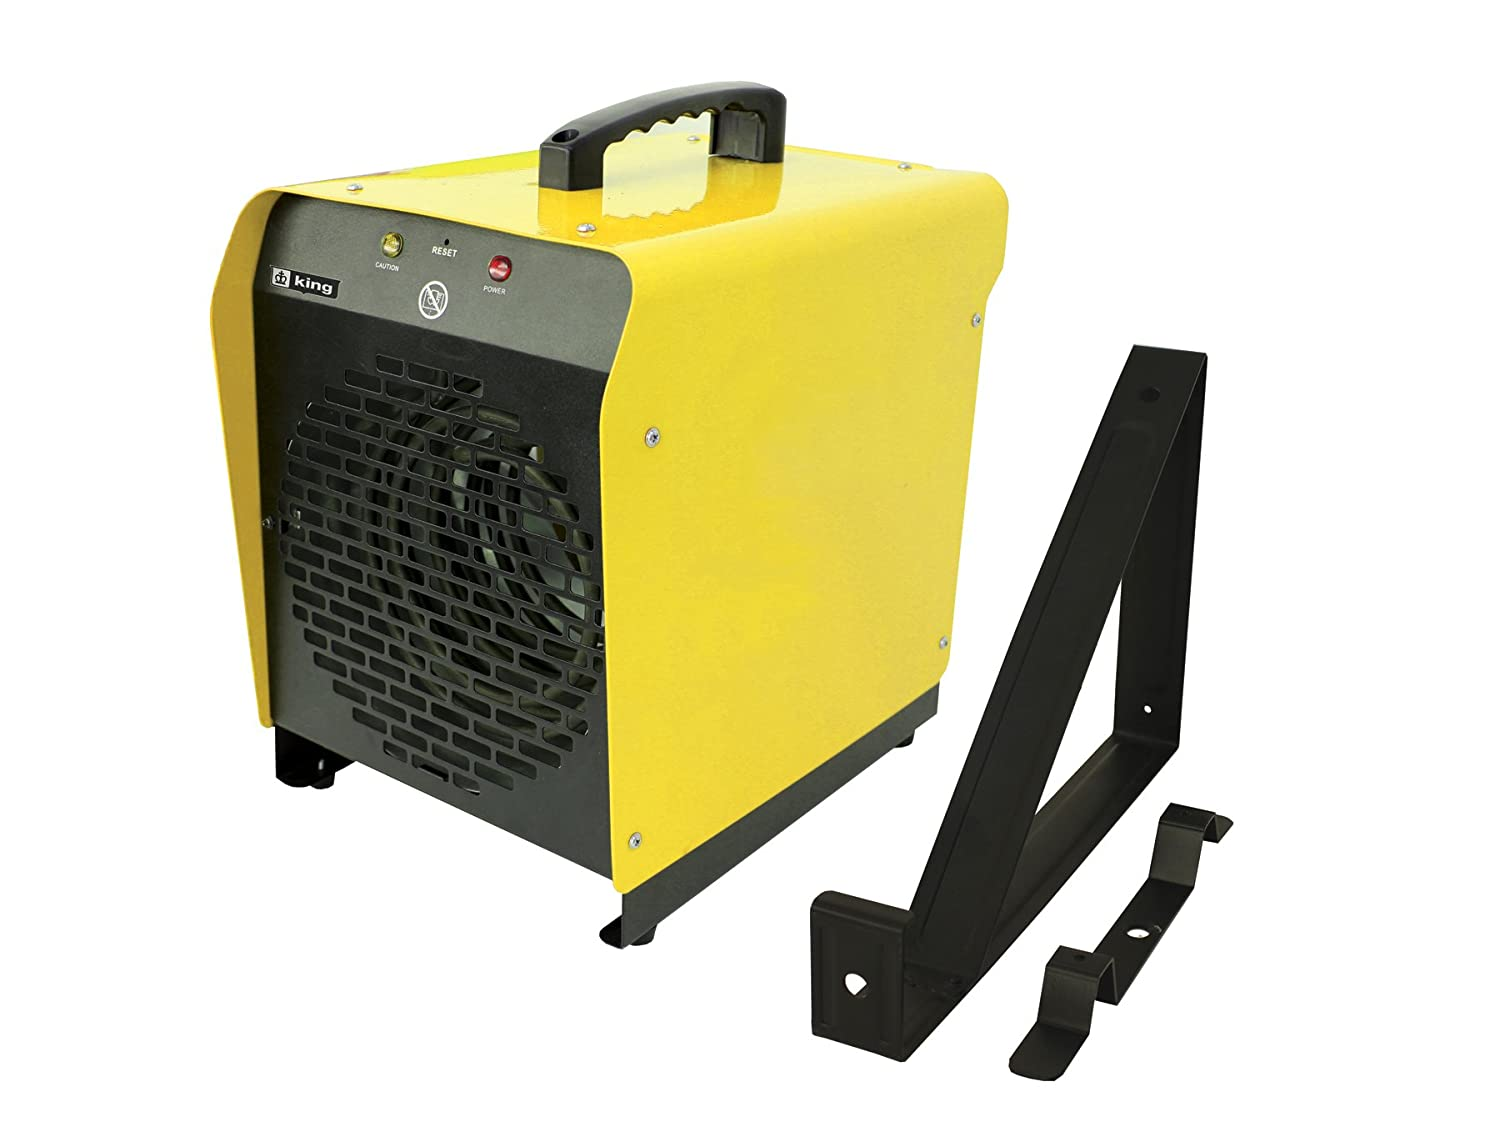 freight garage harbor cover heater portable